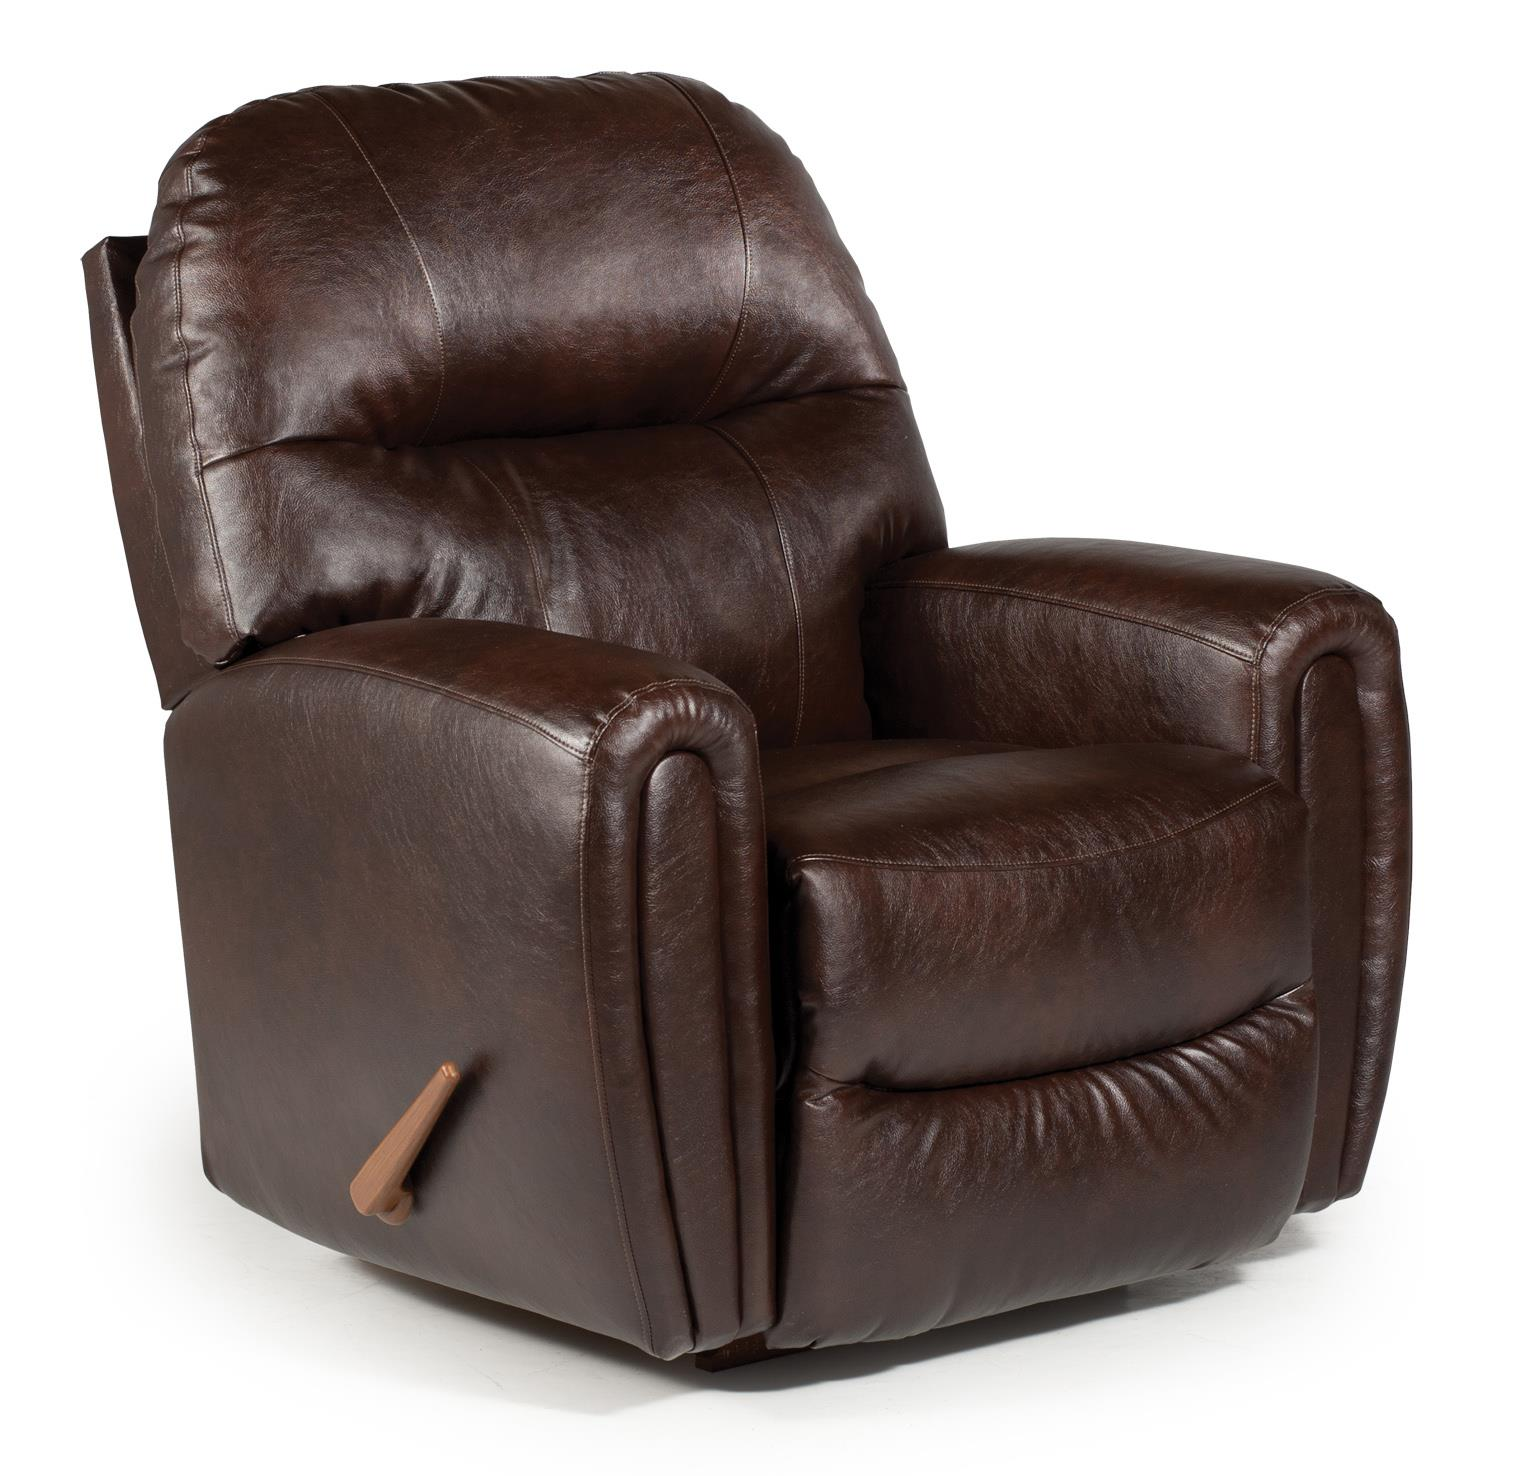 Best Chairs Inc Recliner Best Home Furnishings Medium Recliners 8n64u Markson Space